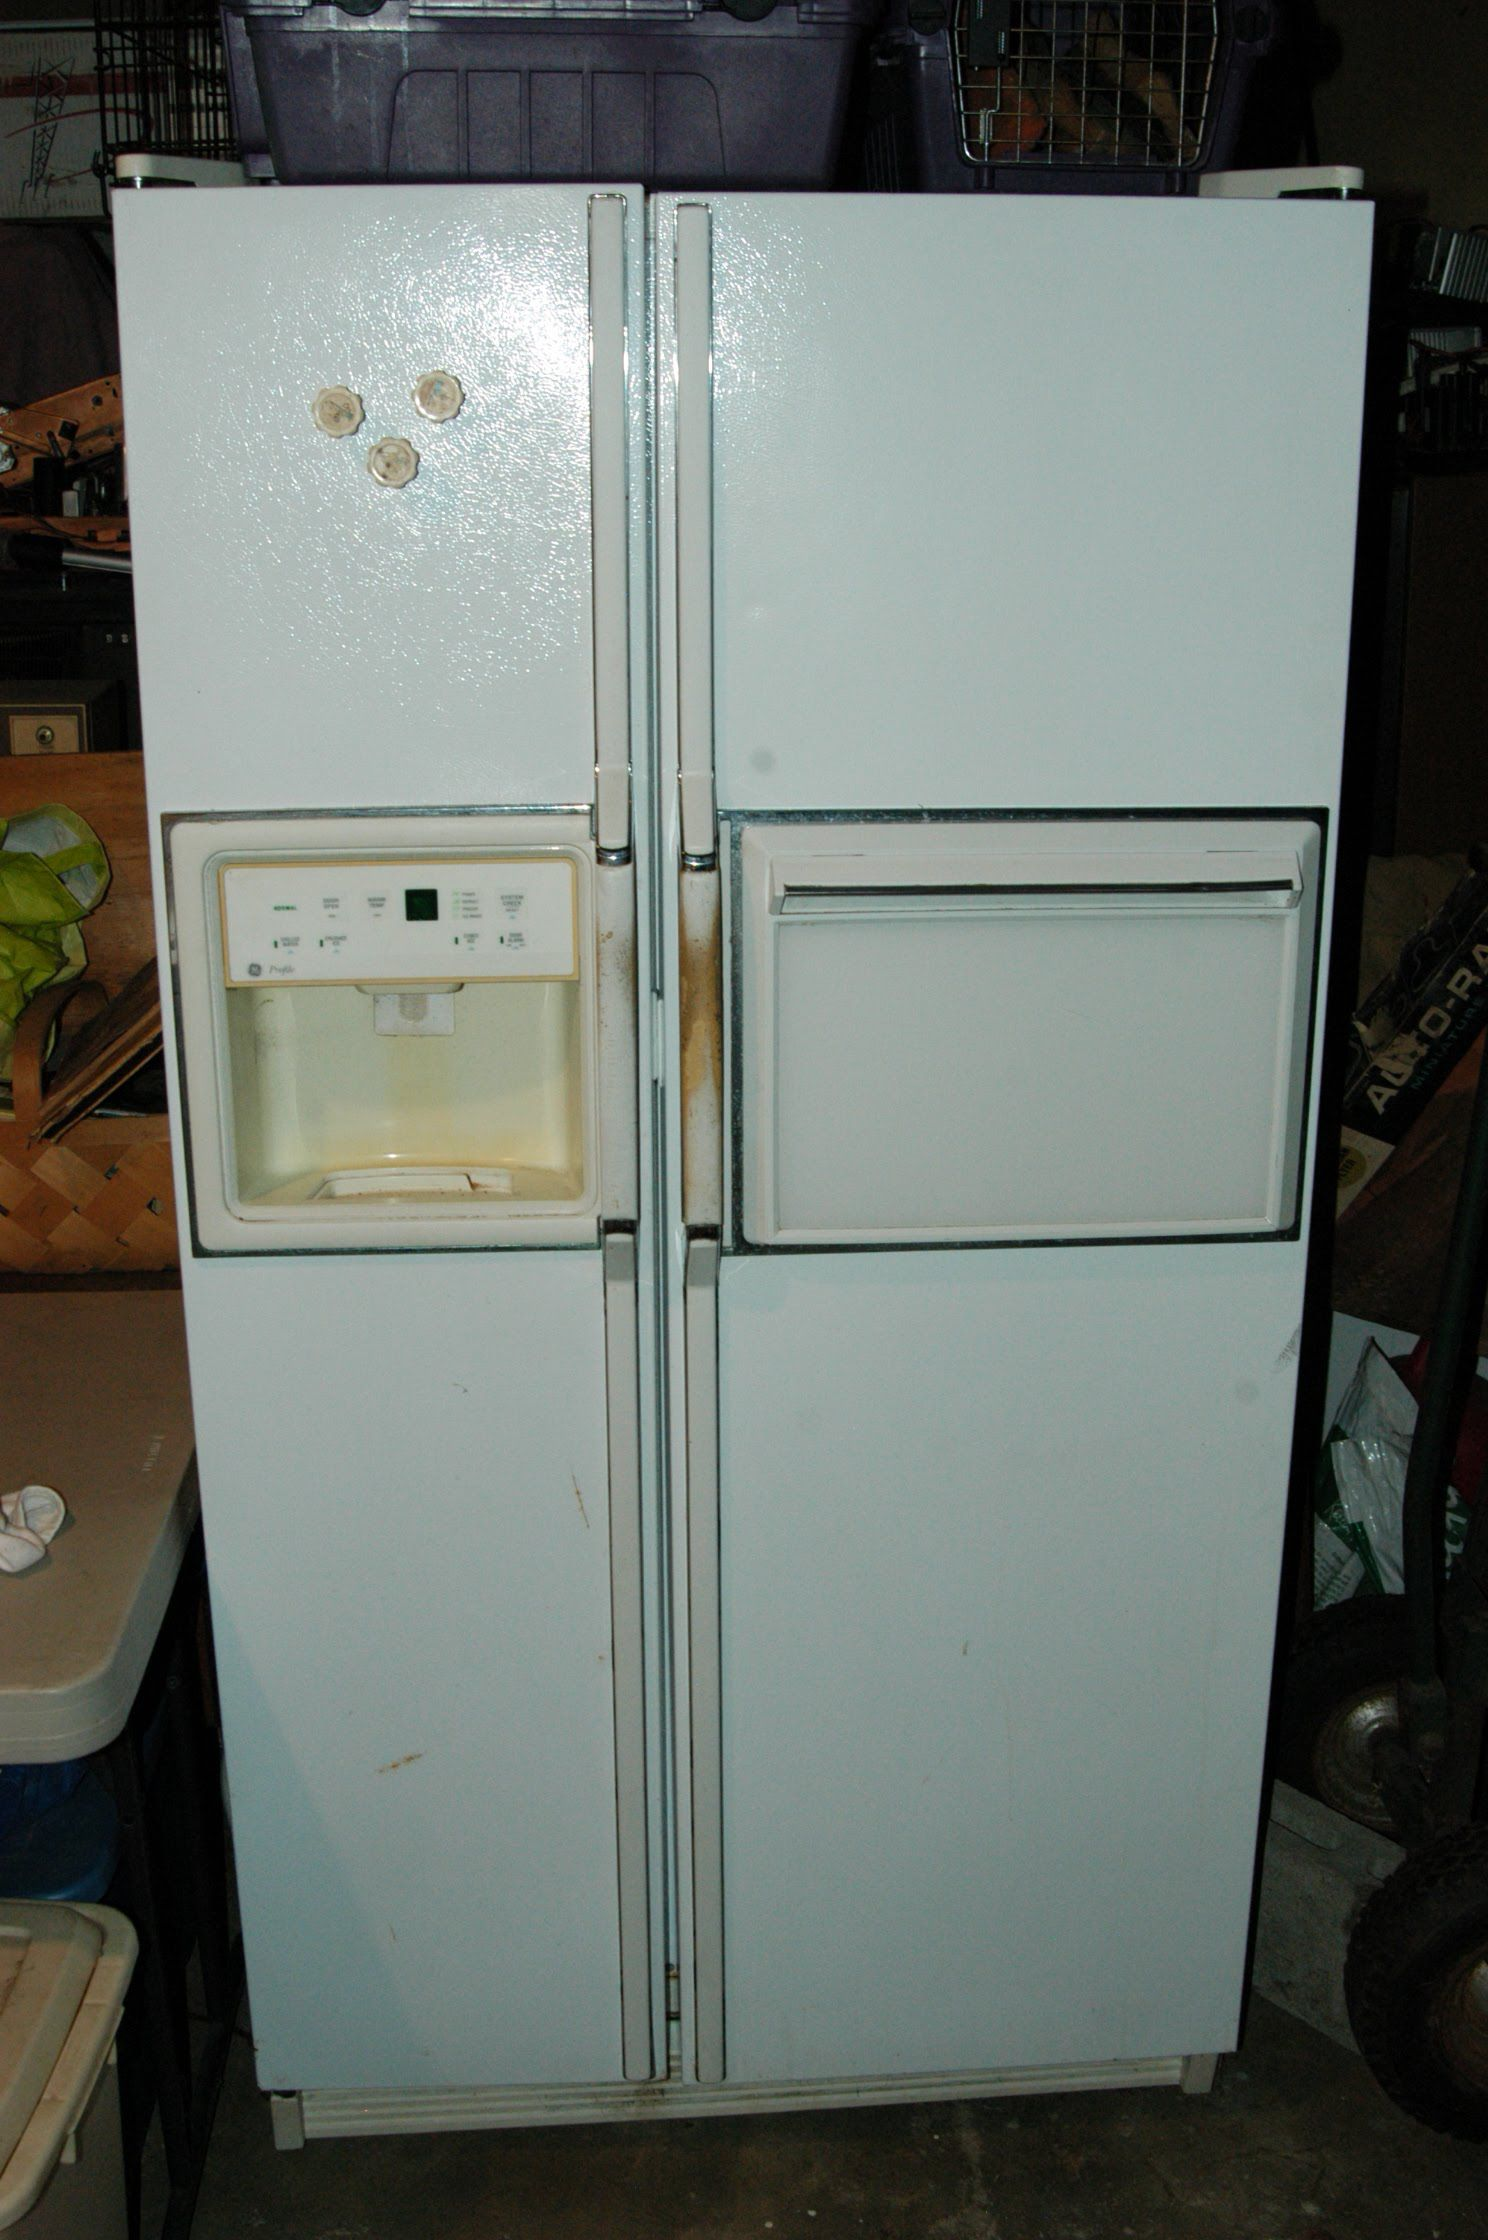 Ge Refrigerator Defrost Troubleshooting And Heater Repair Heater